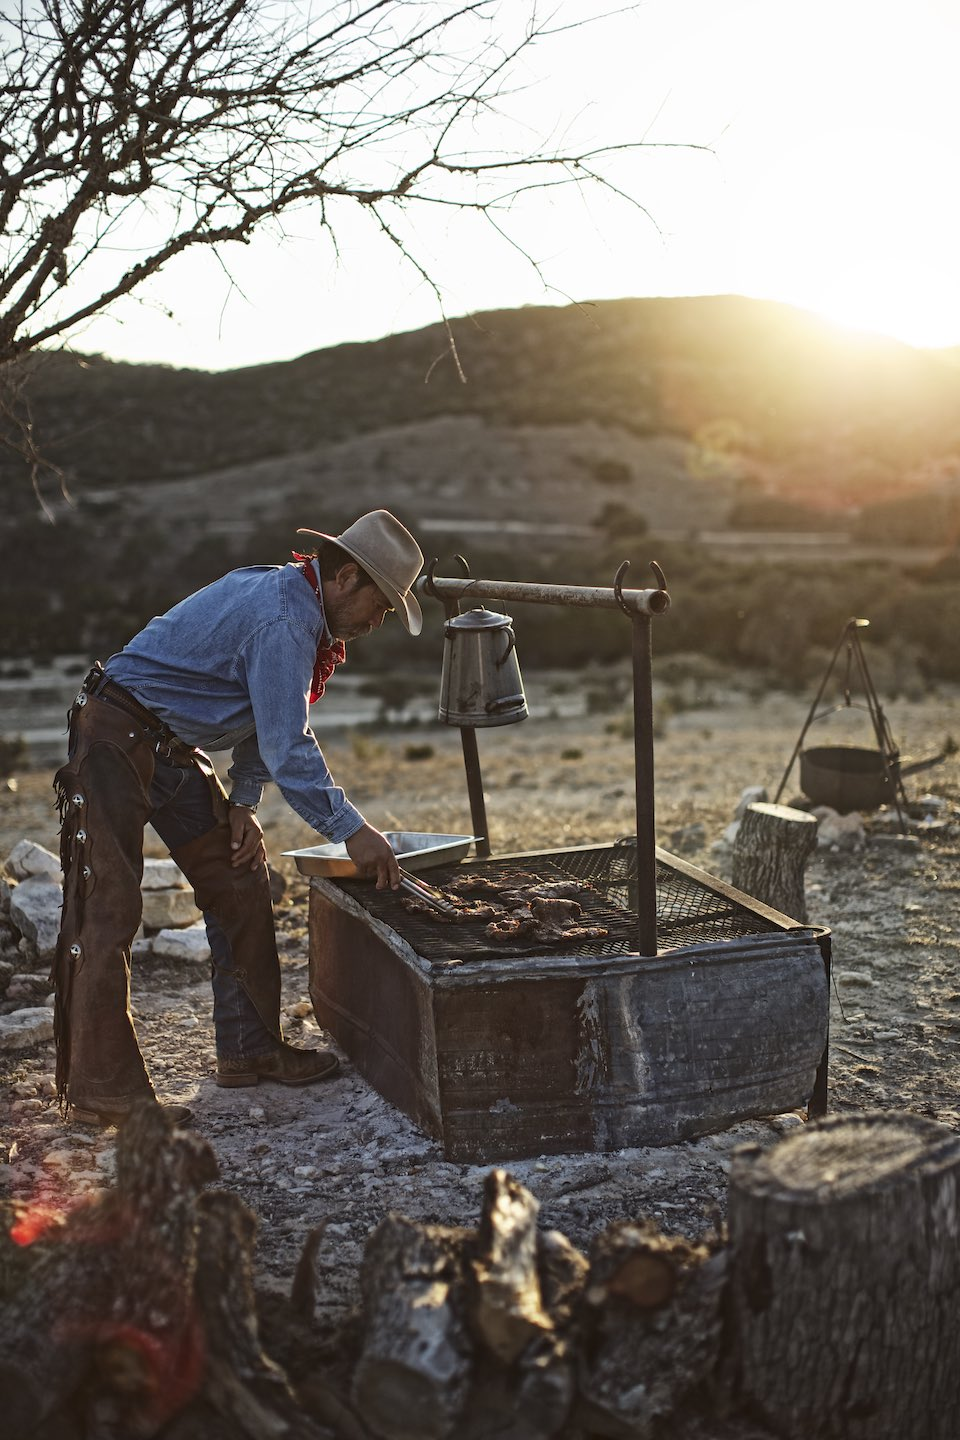 Cowboy cooking on an outdoor grill at sunset.